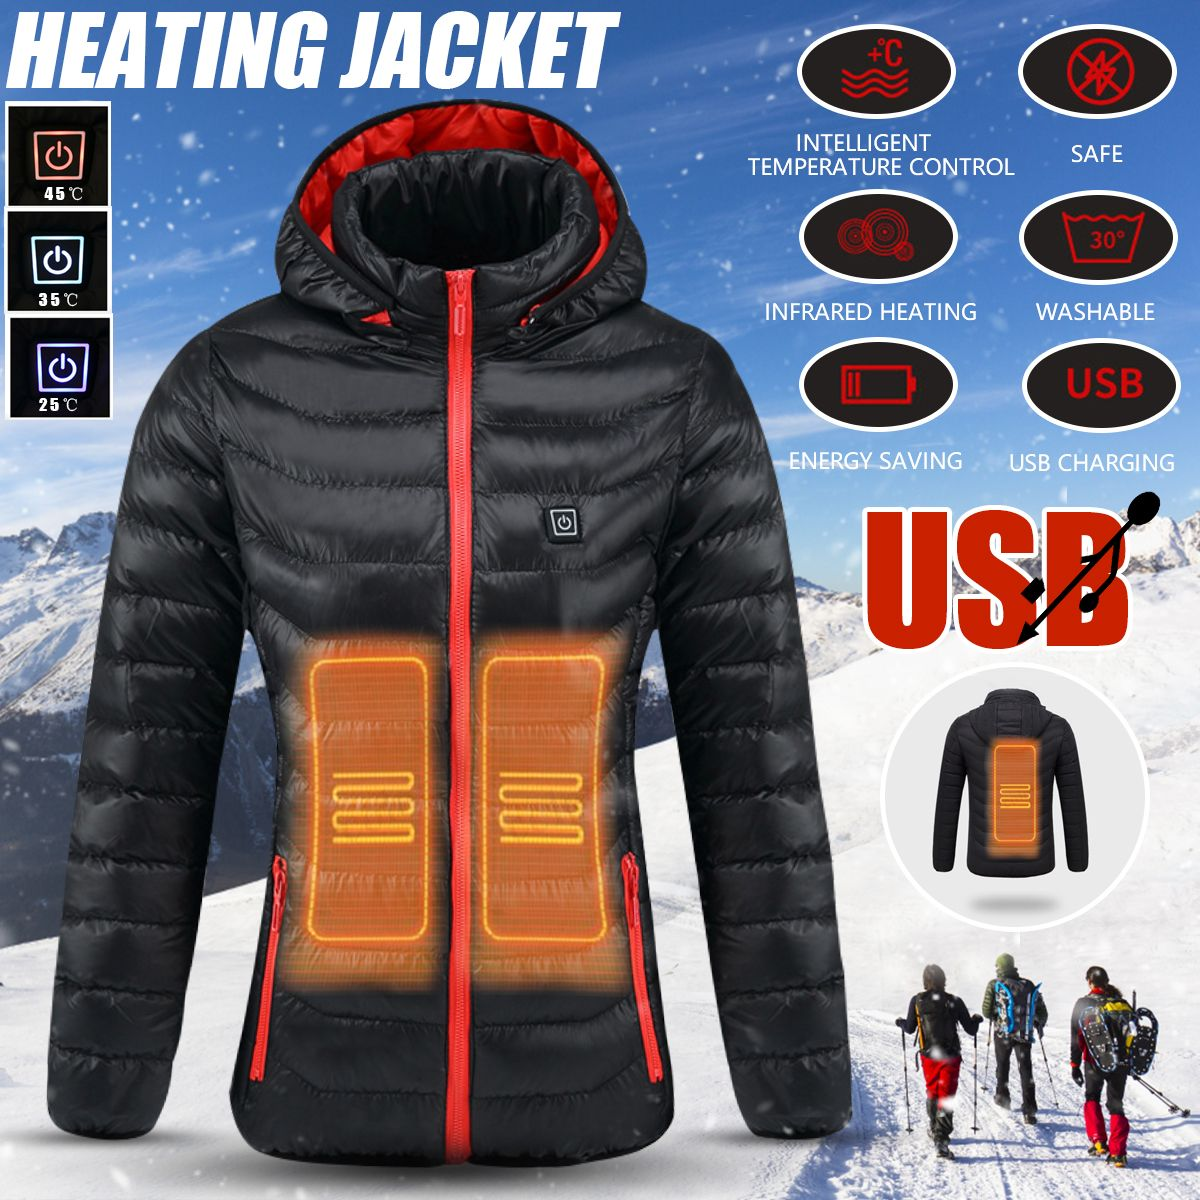 Women Winter USB Heating Jacket Heated Safety Jacket Hooded Work Coats Adjustable Temperature Control Safety Clothing S/M/L/XL